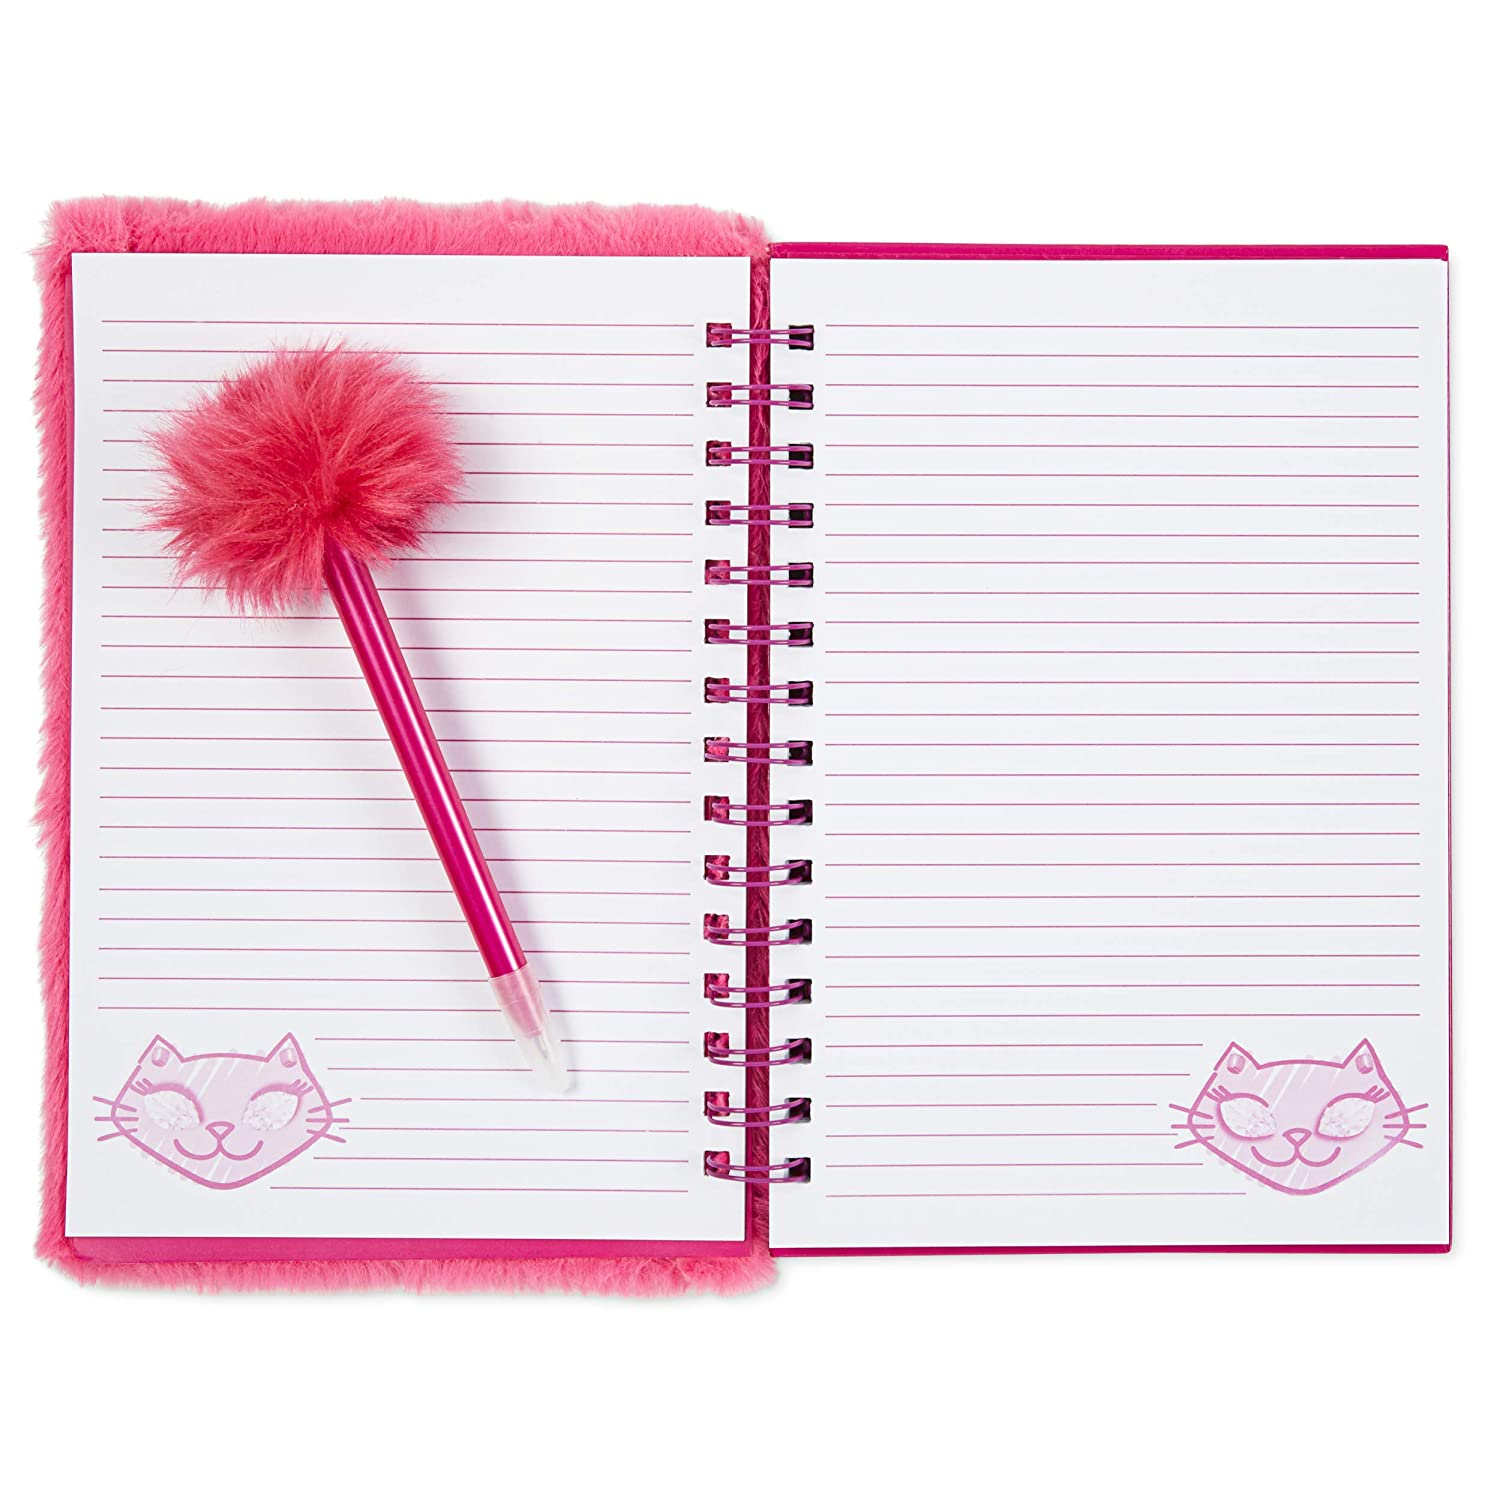 Plush Hardcover Diary and Purple Ballpoint Pen Covered In Faux Fur For Writing And Drawing Fuzzy Pink Spiral Bound Journal Notebook and Pen Set With Pretty Mermaid Design